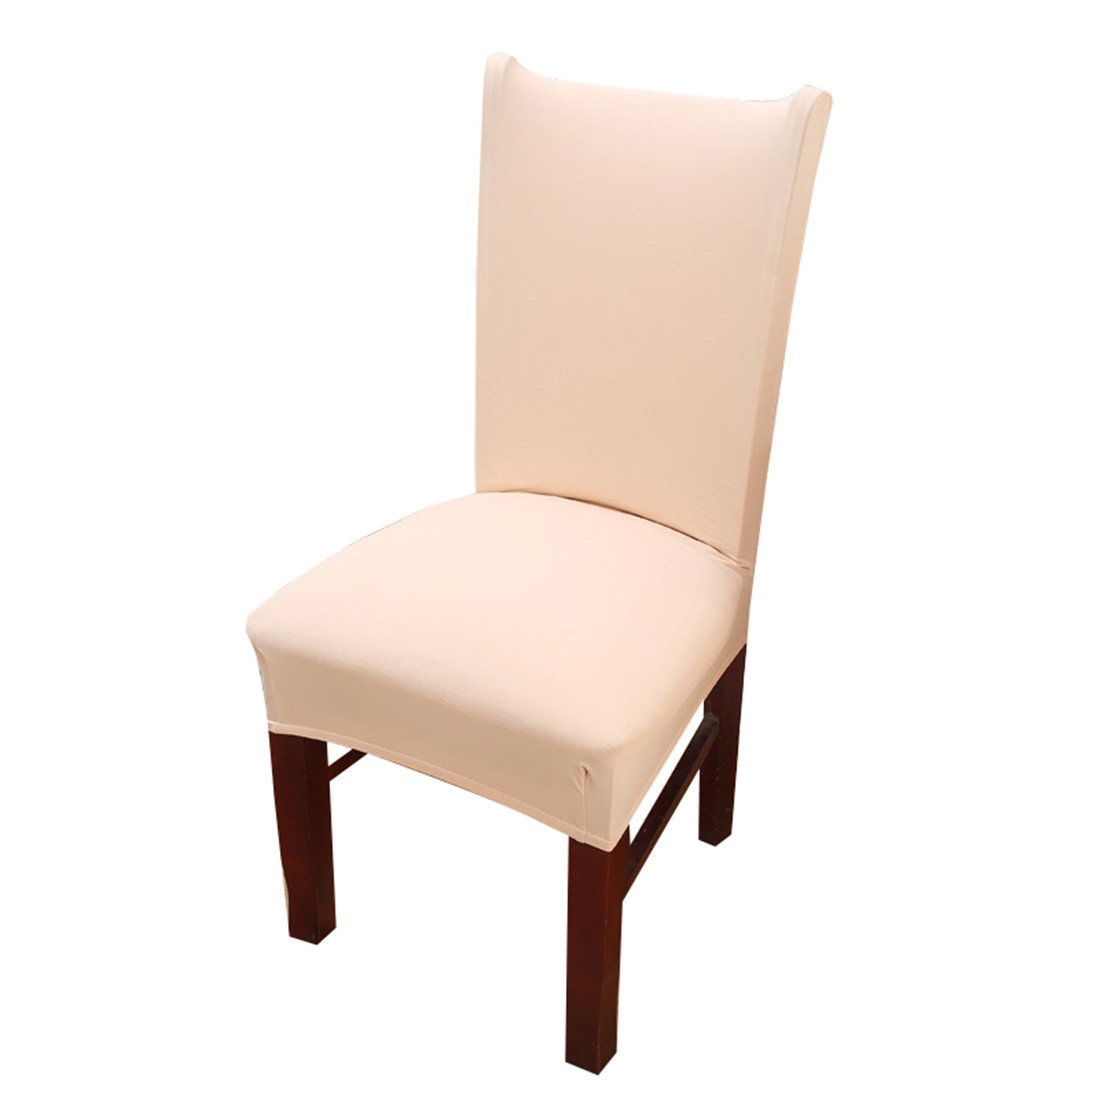 Deisy Dee Stretch Solid Color Chair Covers Removable Washable for Hotel Dining Room Ceremony Chair Slipcovers Pack of 6 C093 (Beige) by Deisy Dee (Image #2)